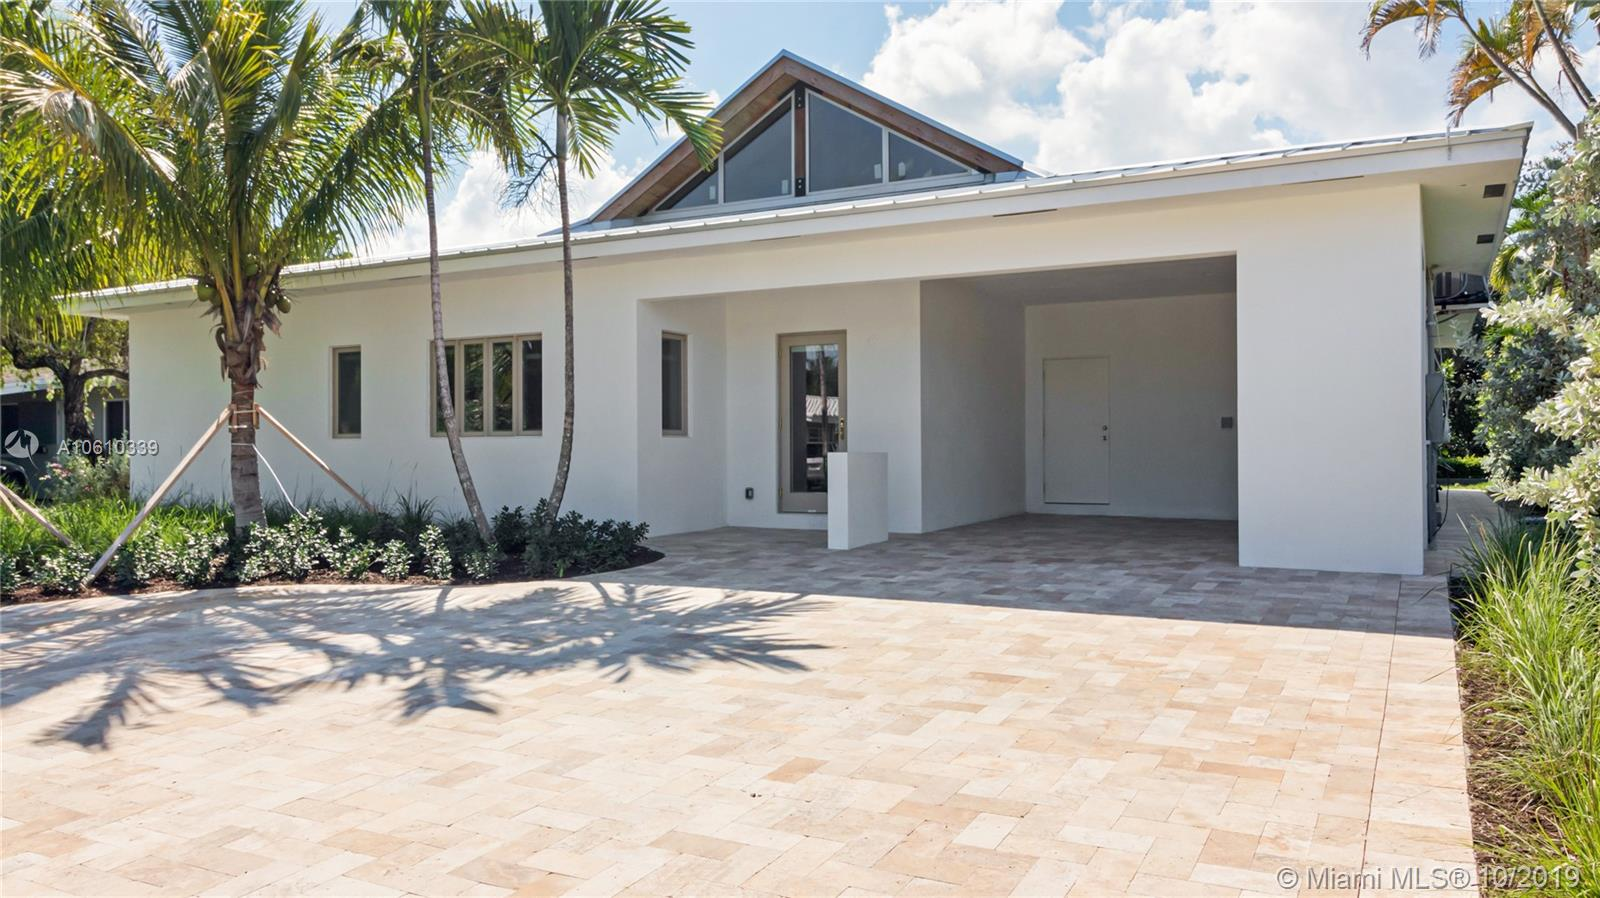 1935 NW 3rd Ave, Wilton Manors FL 33311